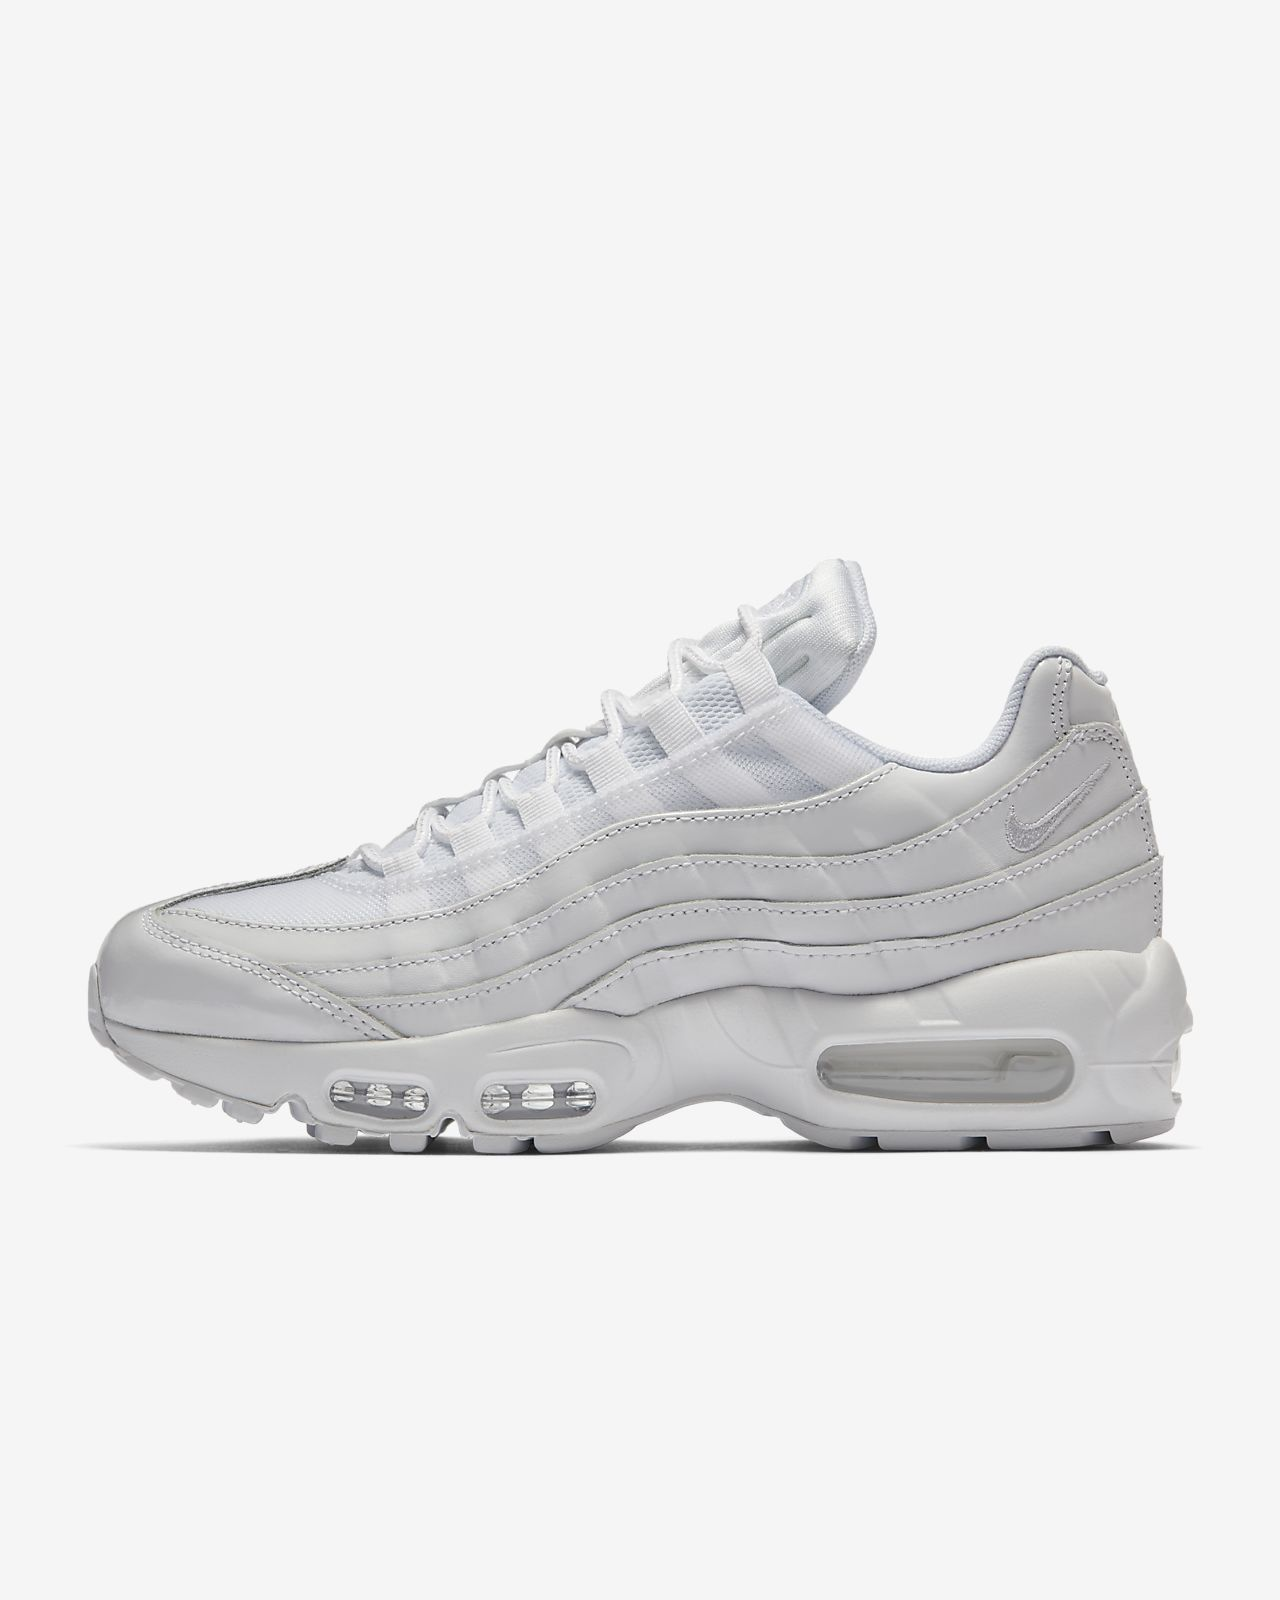 Nike Air Max 1 Trainers Discount Stores|Best Price 2017